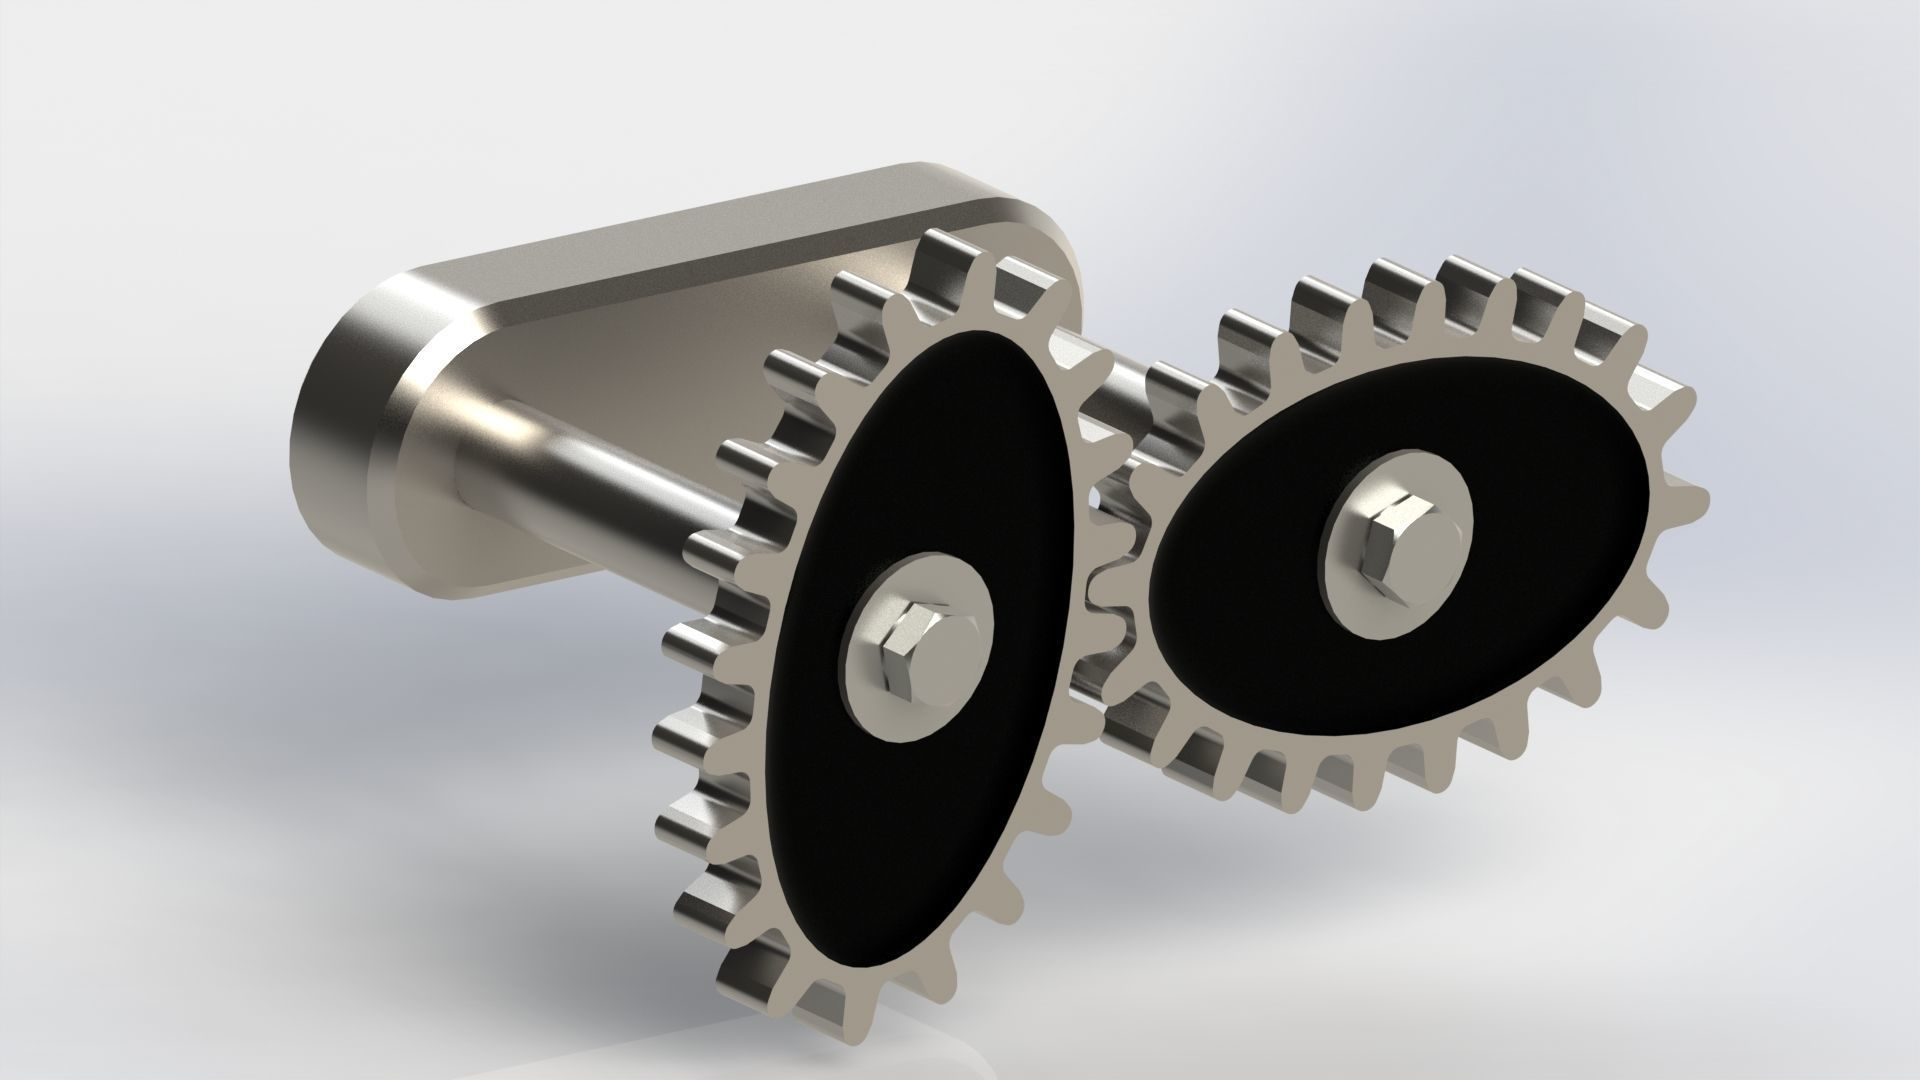 Elliptical Gear - SolidWorks